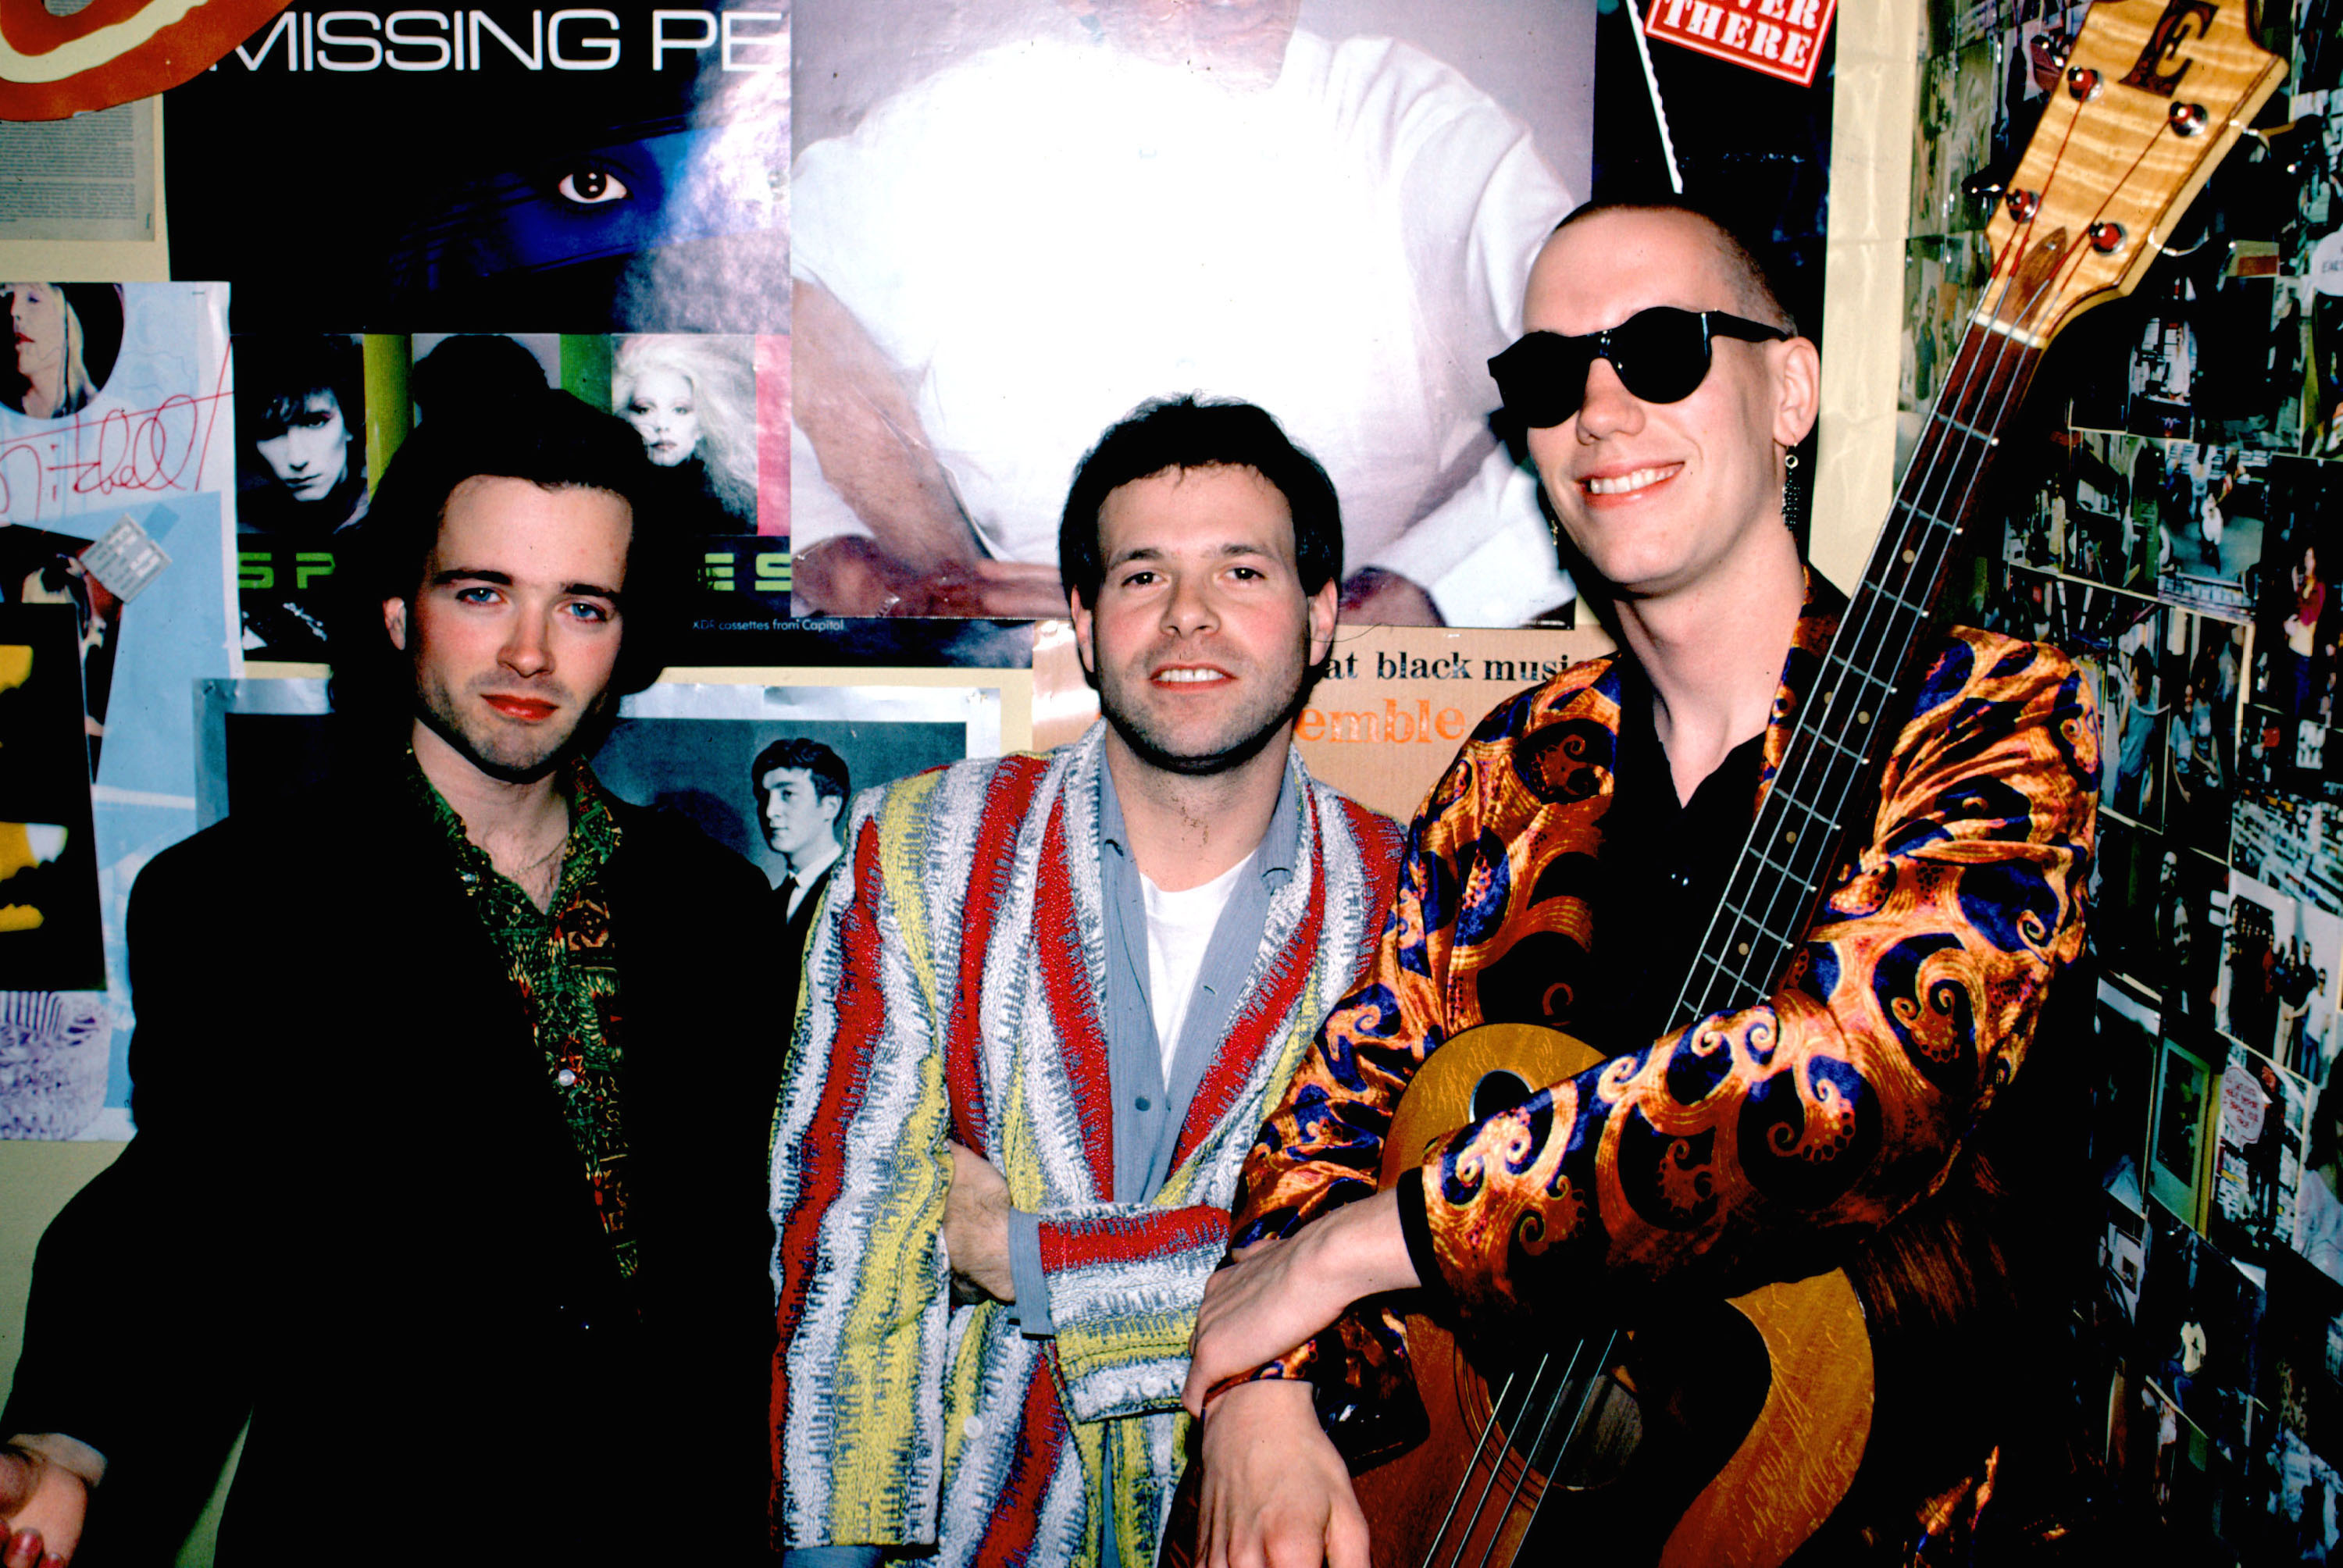 Gordon Gano, Victor DeLorenzo and Brian Ritchie of Violent Femmes perform a set at Tower Records in Sherman Oaks, CA, 1985 (P